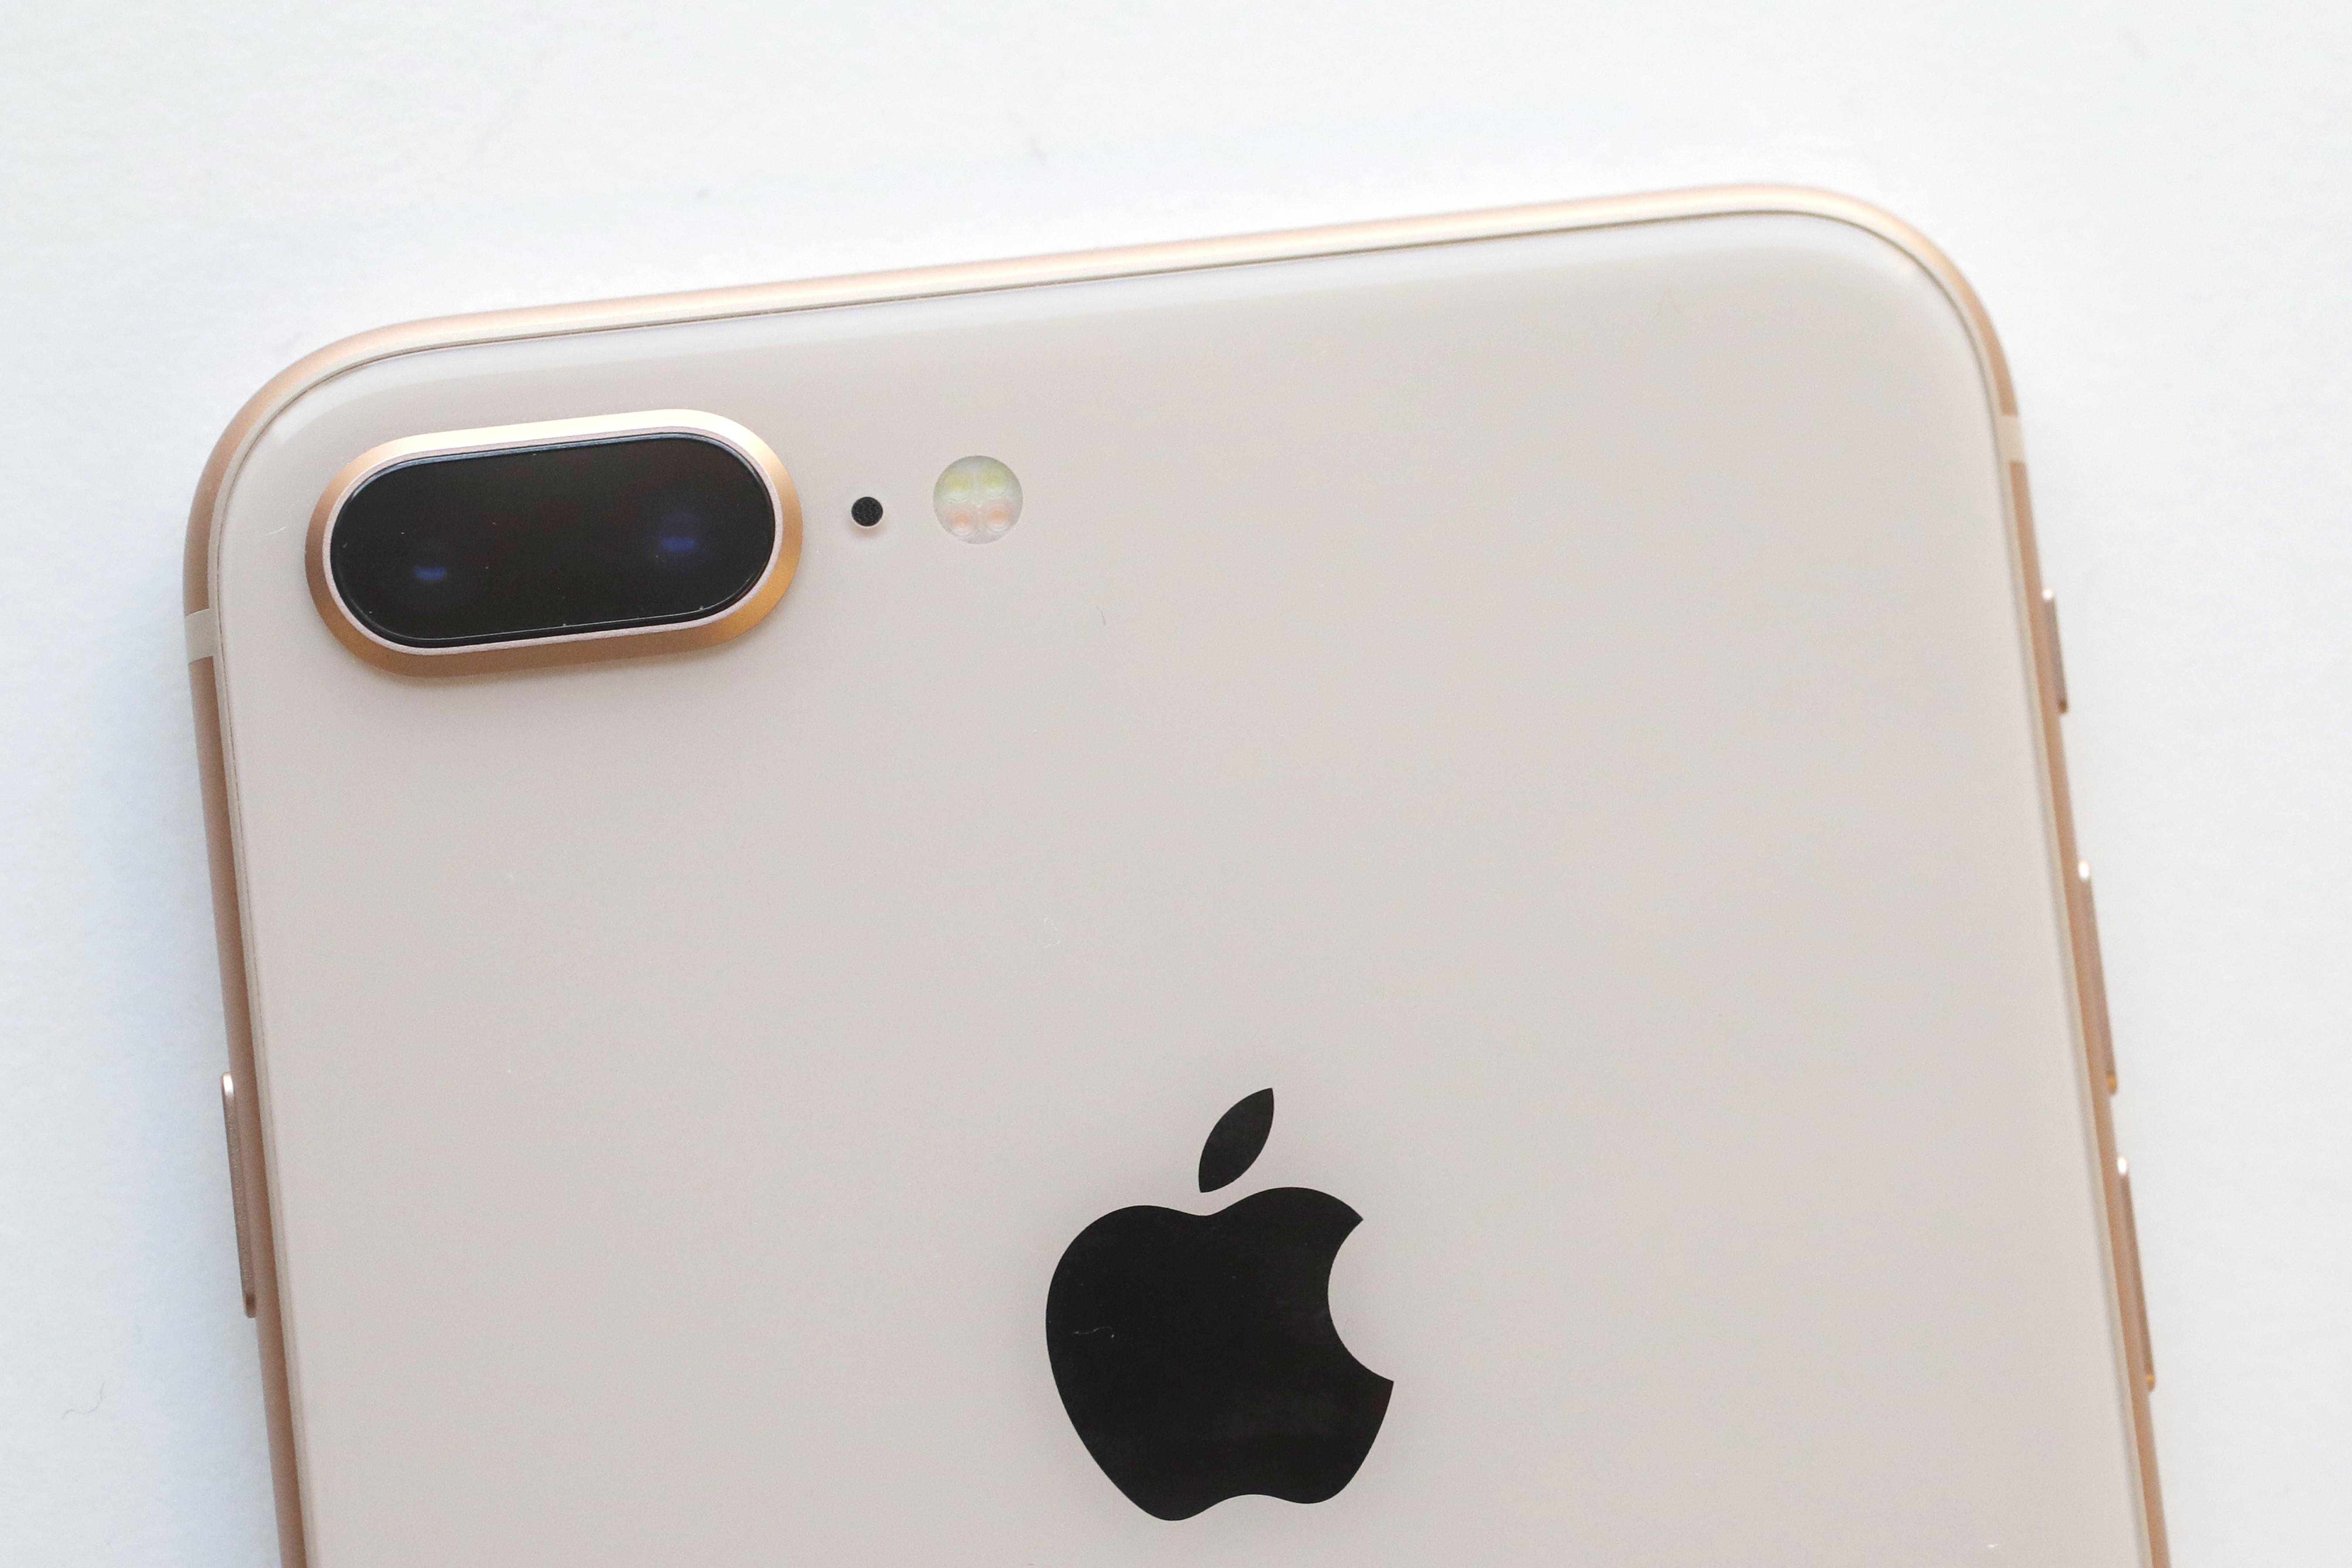 Shares of Apple Inc. and some of its suppliers fell on signs that demand for the new iPhone 8 models isn't as strong as anticipated while buyers await the release of the higher-end iPhone X.